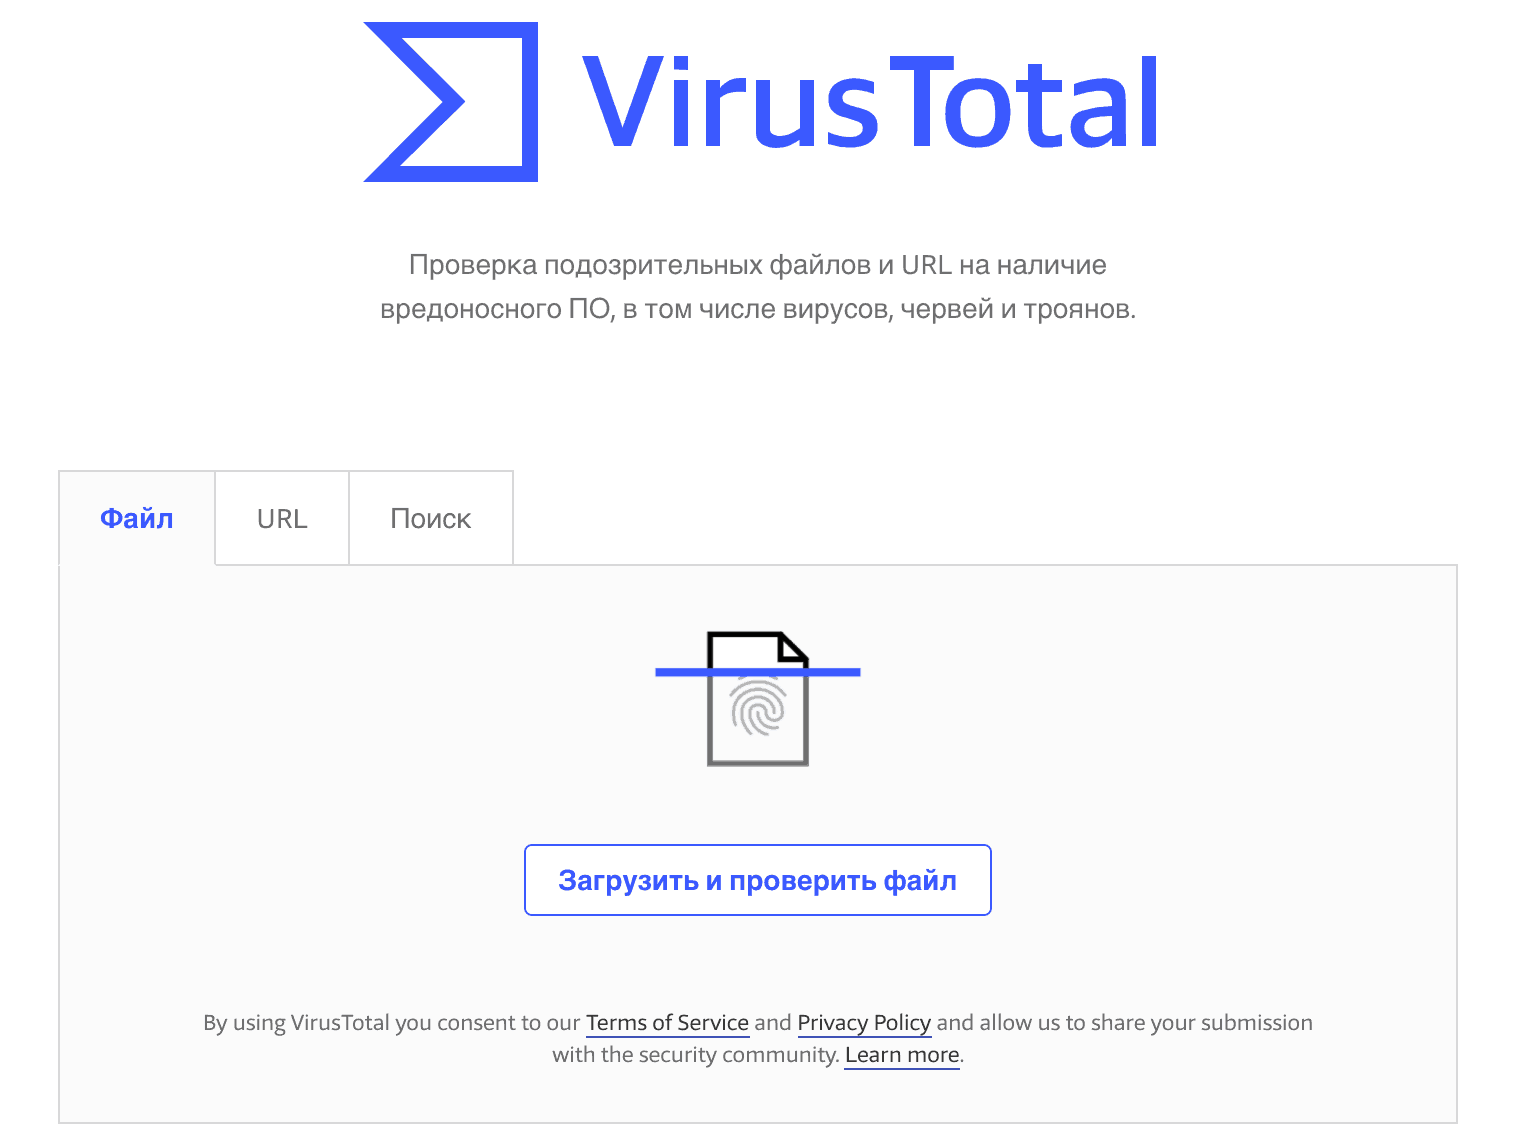 virustotal main